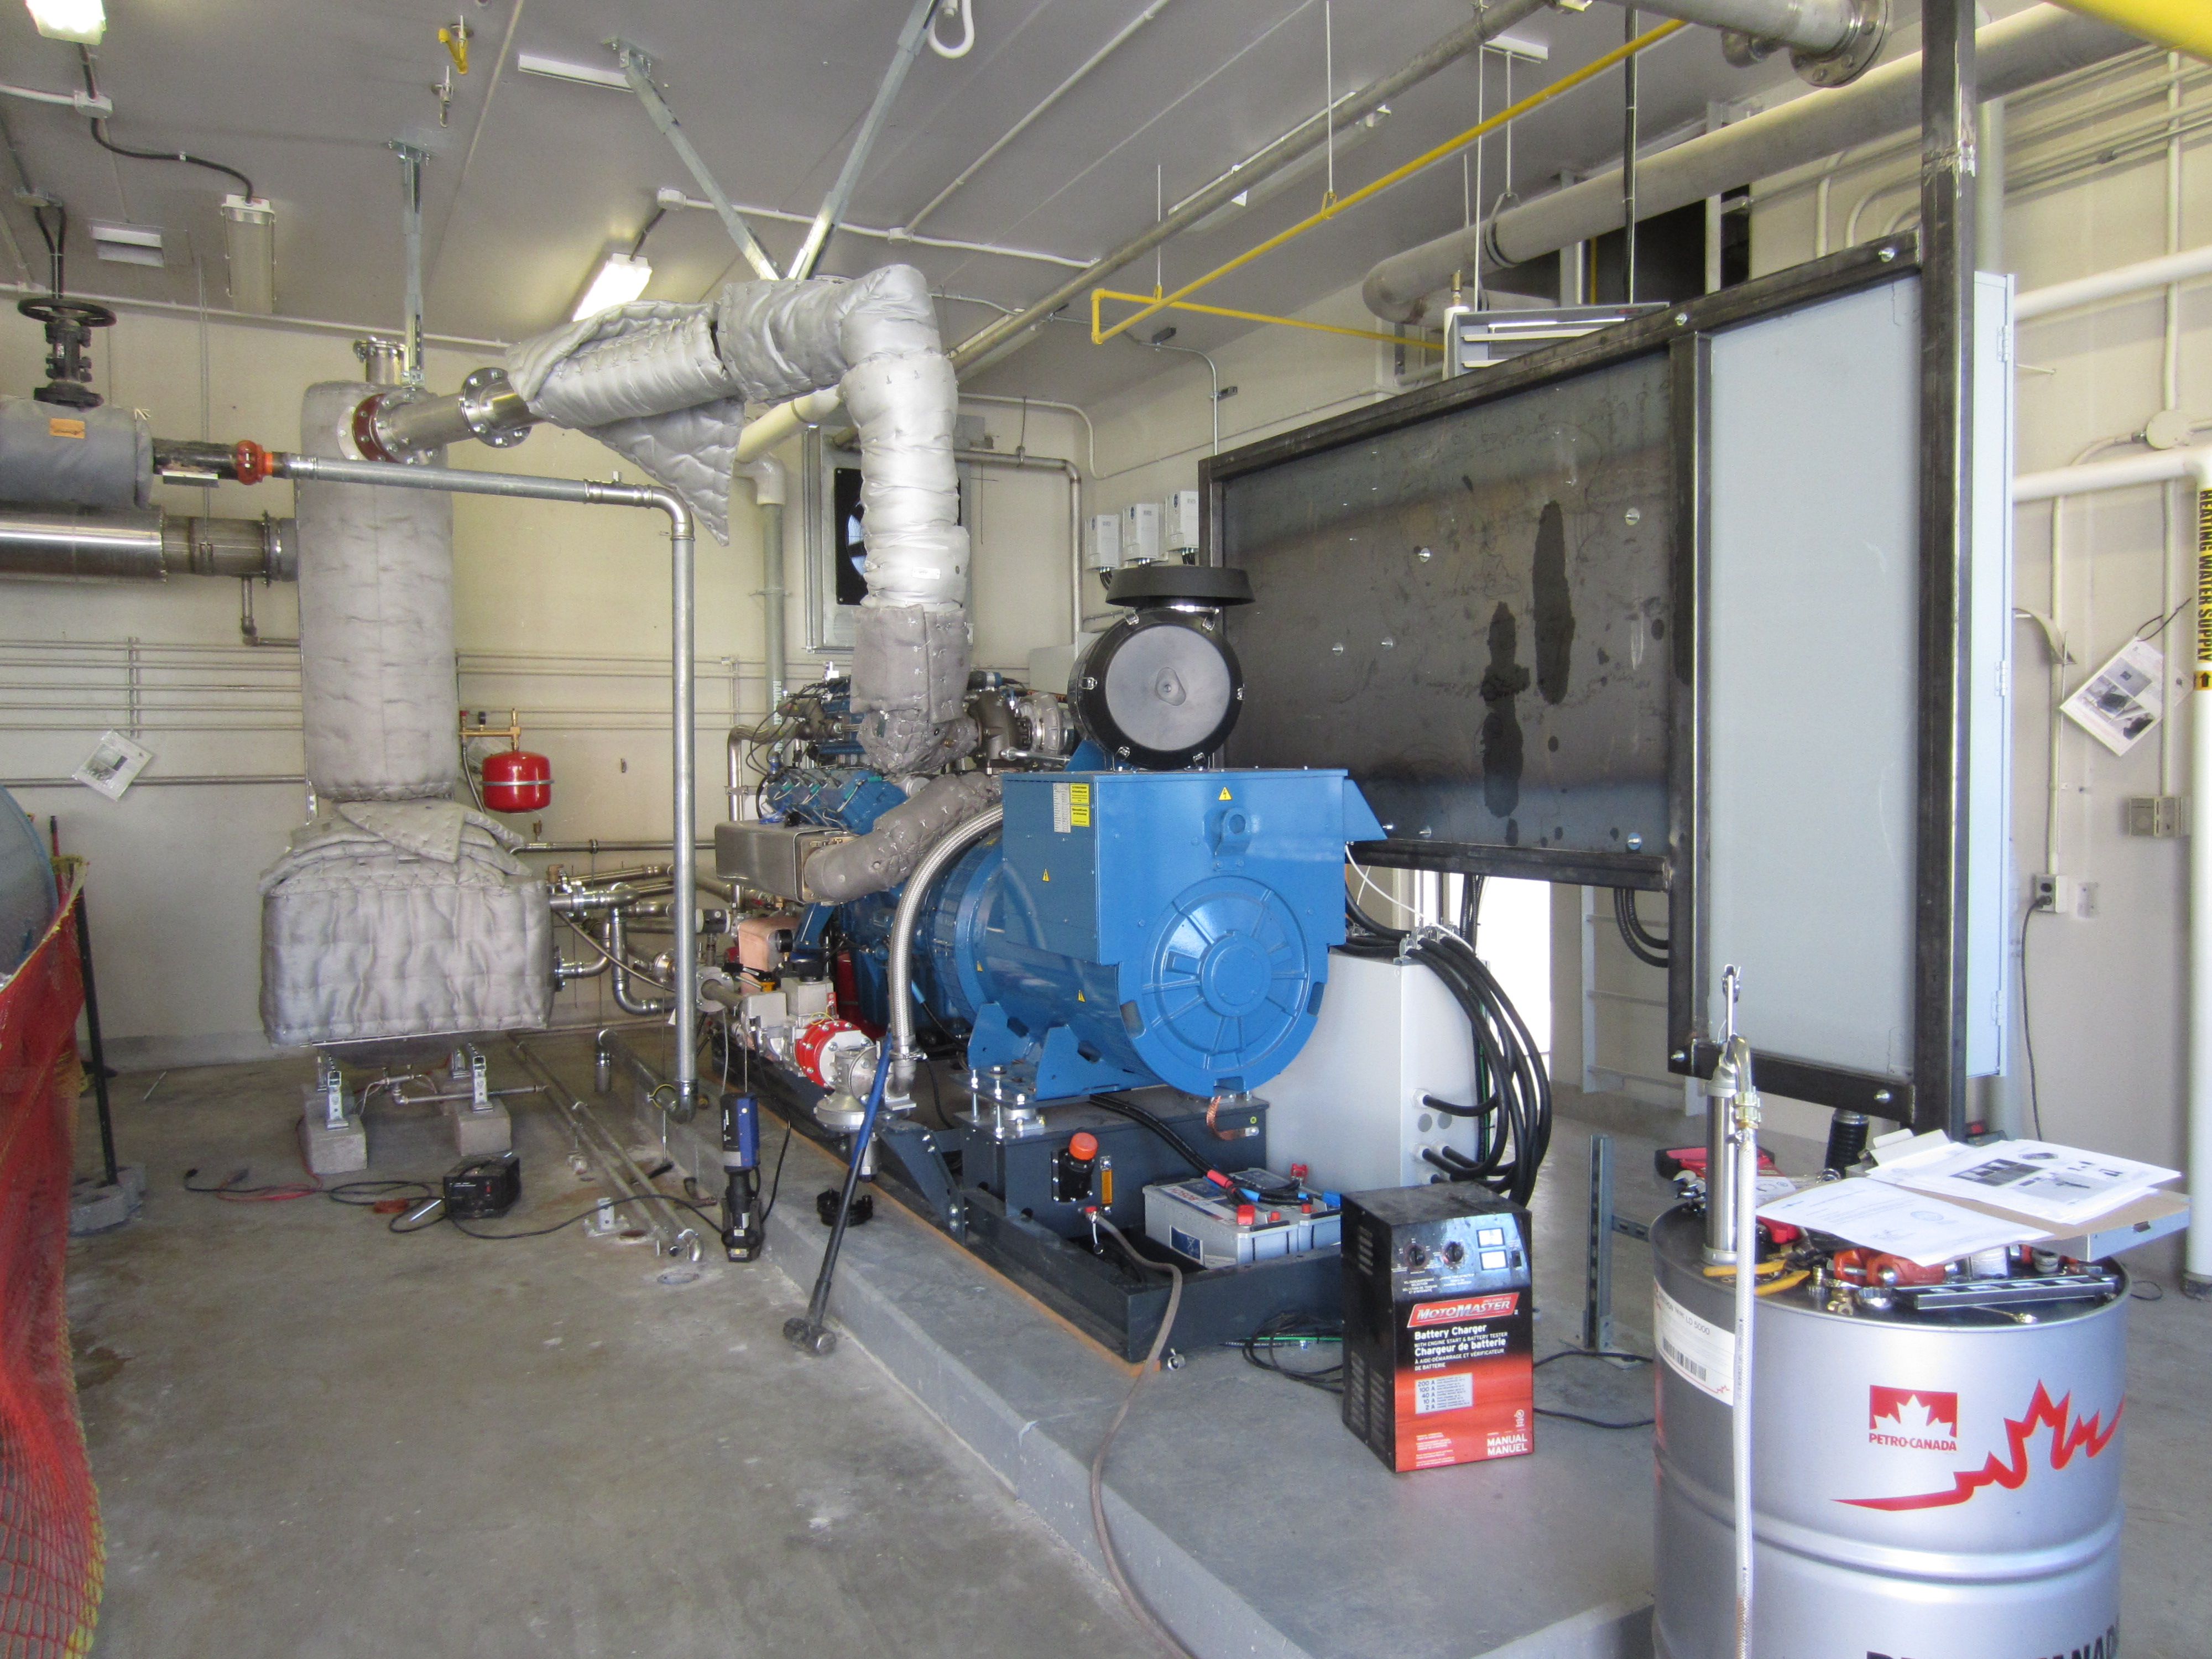 Image of the bio gas engine inside the waste water treatment plant facility.